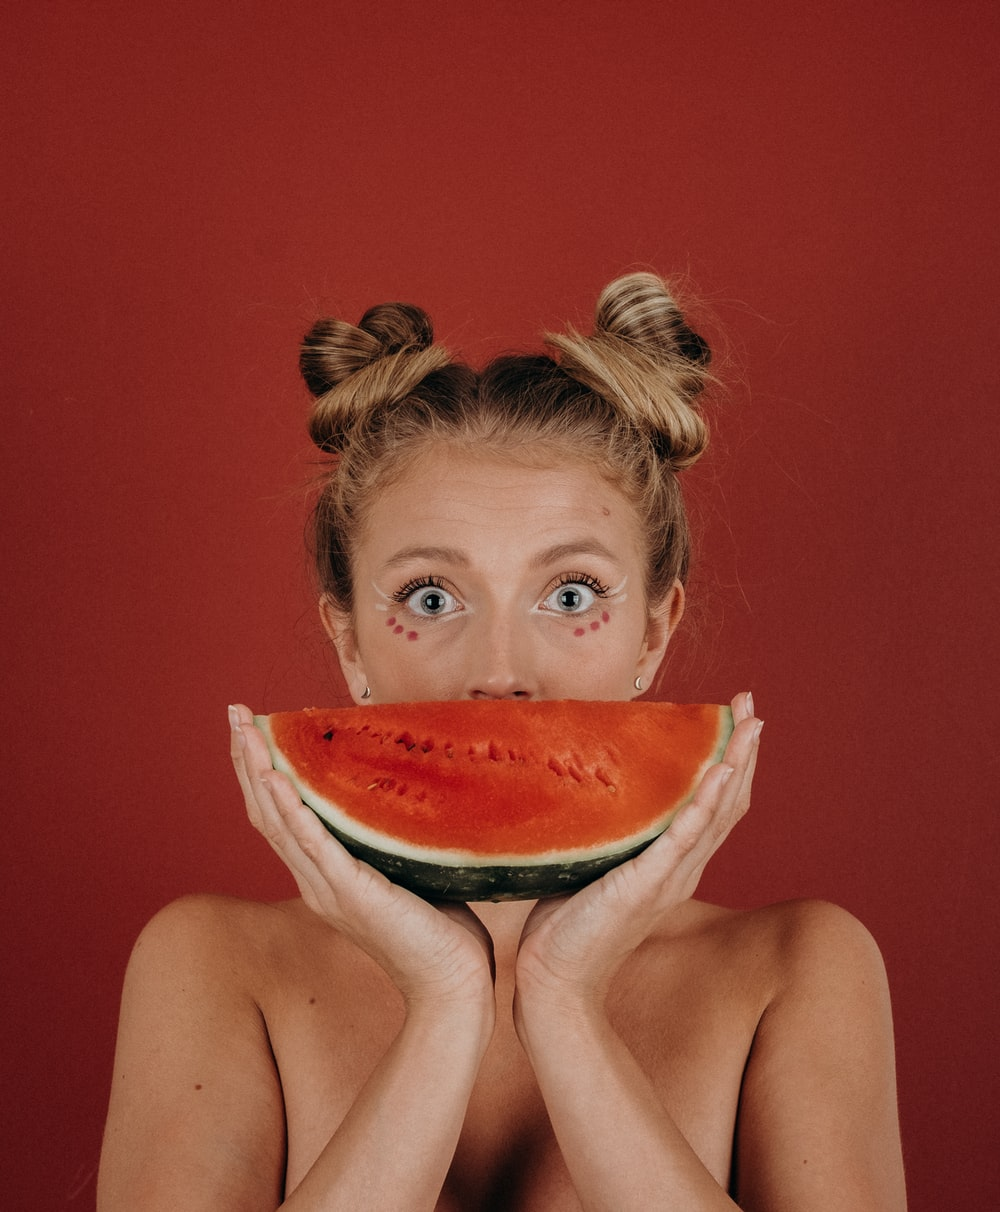 woman covering her mouth with watermelon